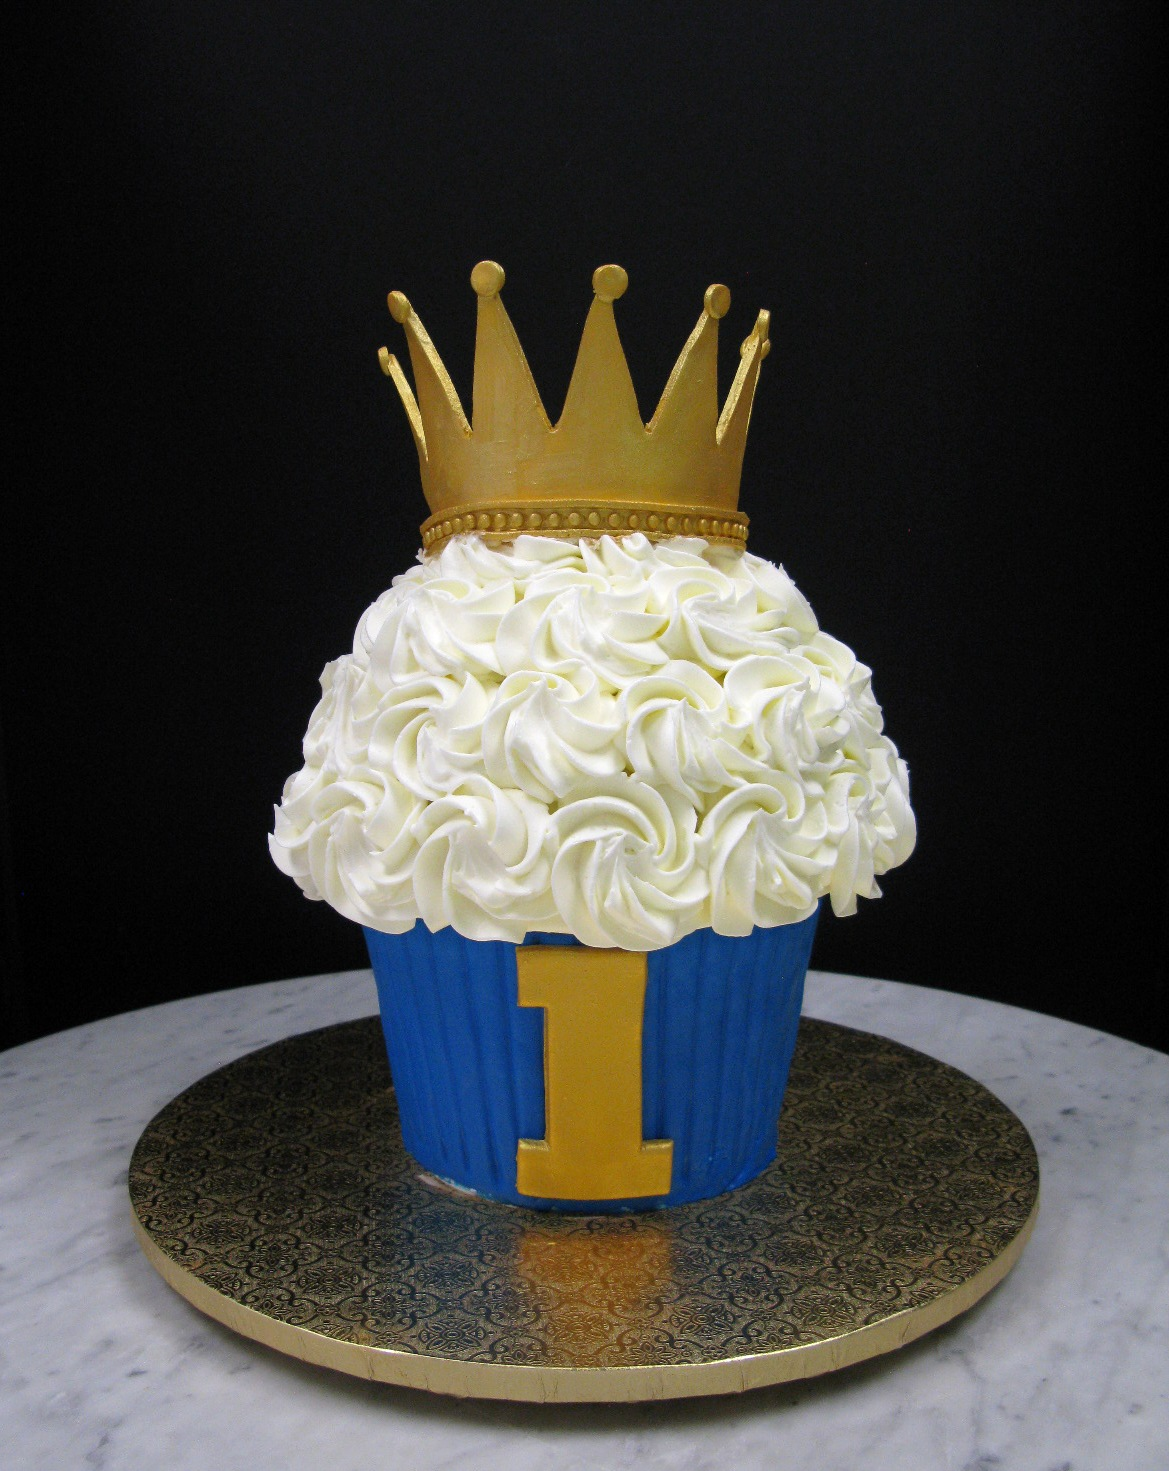 Large Cupcake with Crown